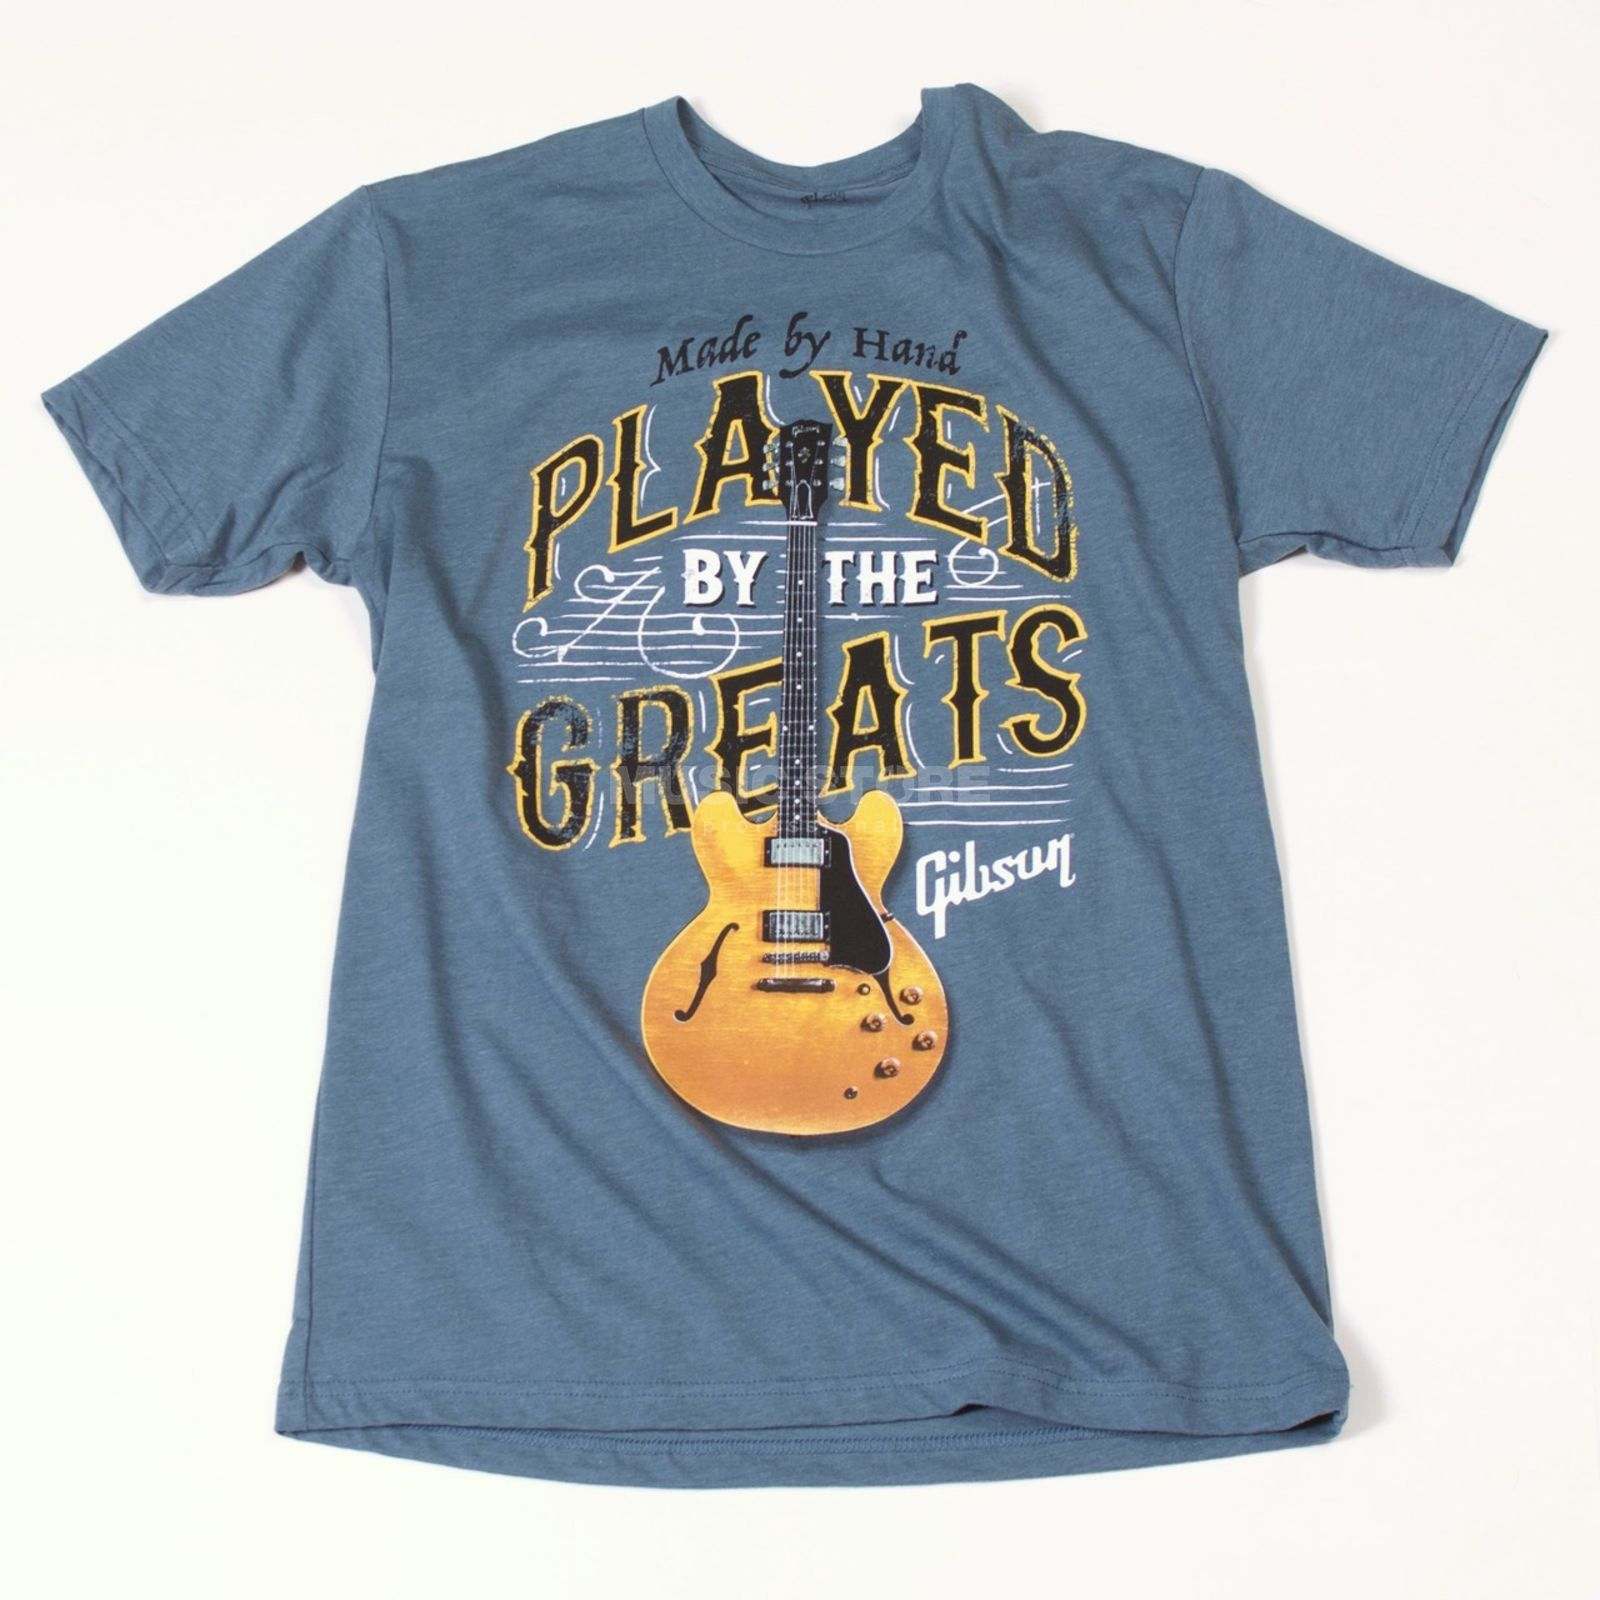 Gibson Played By The Greats T-Shirt XL Image du produit